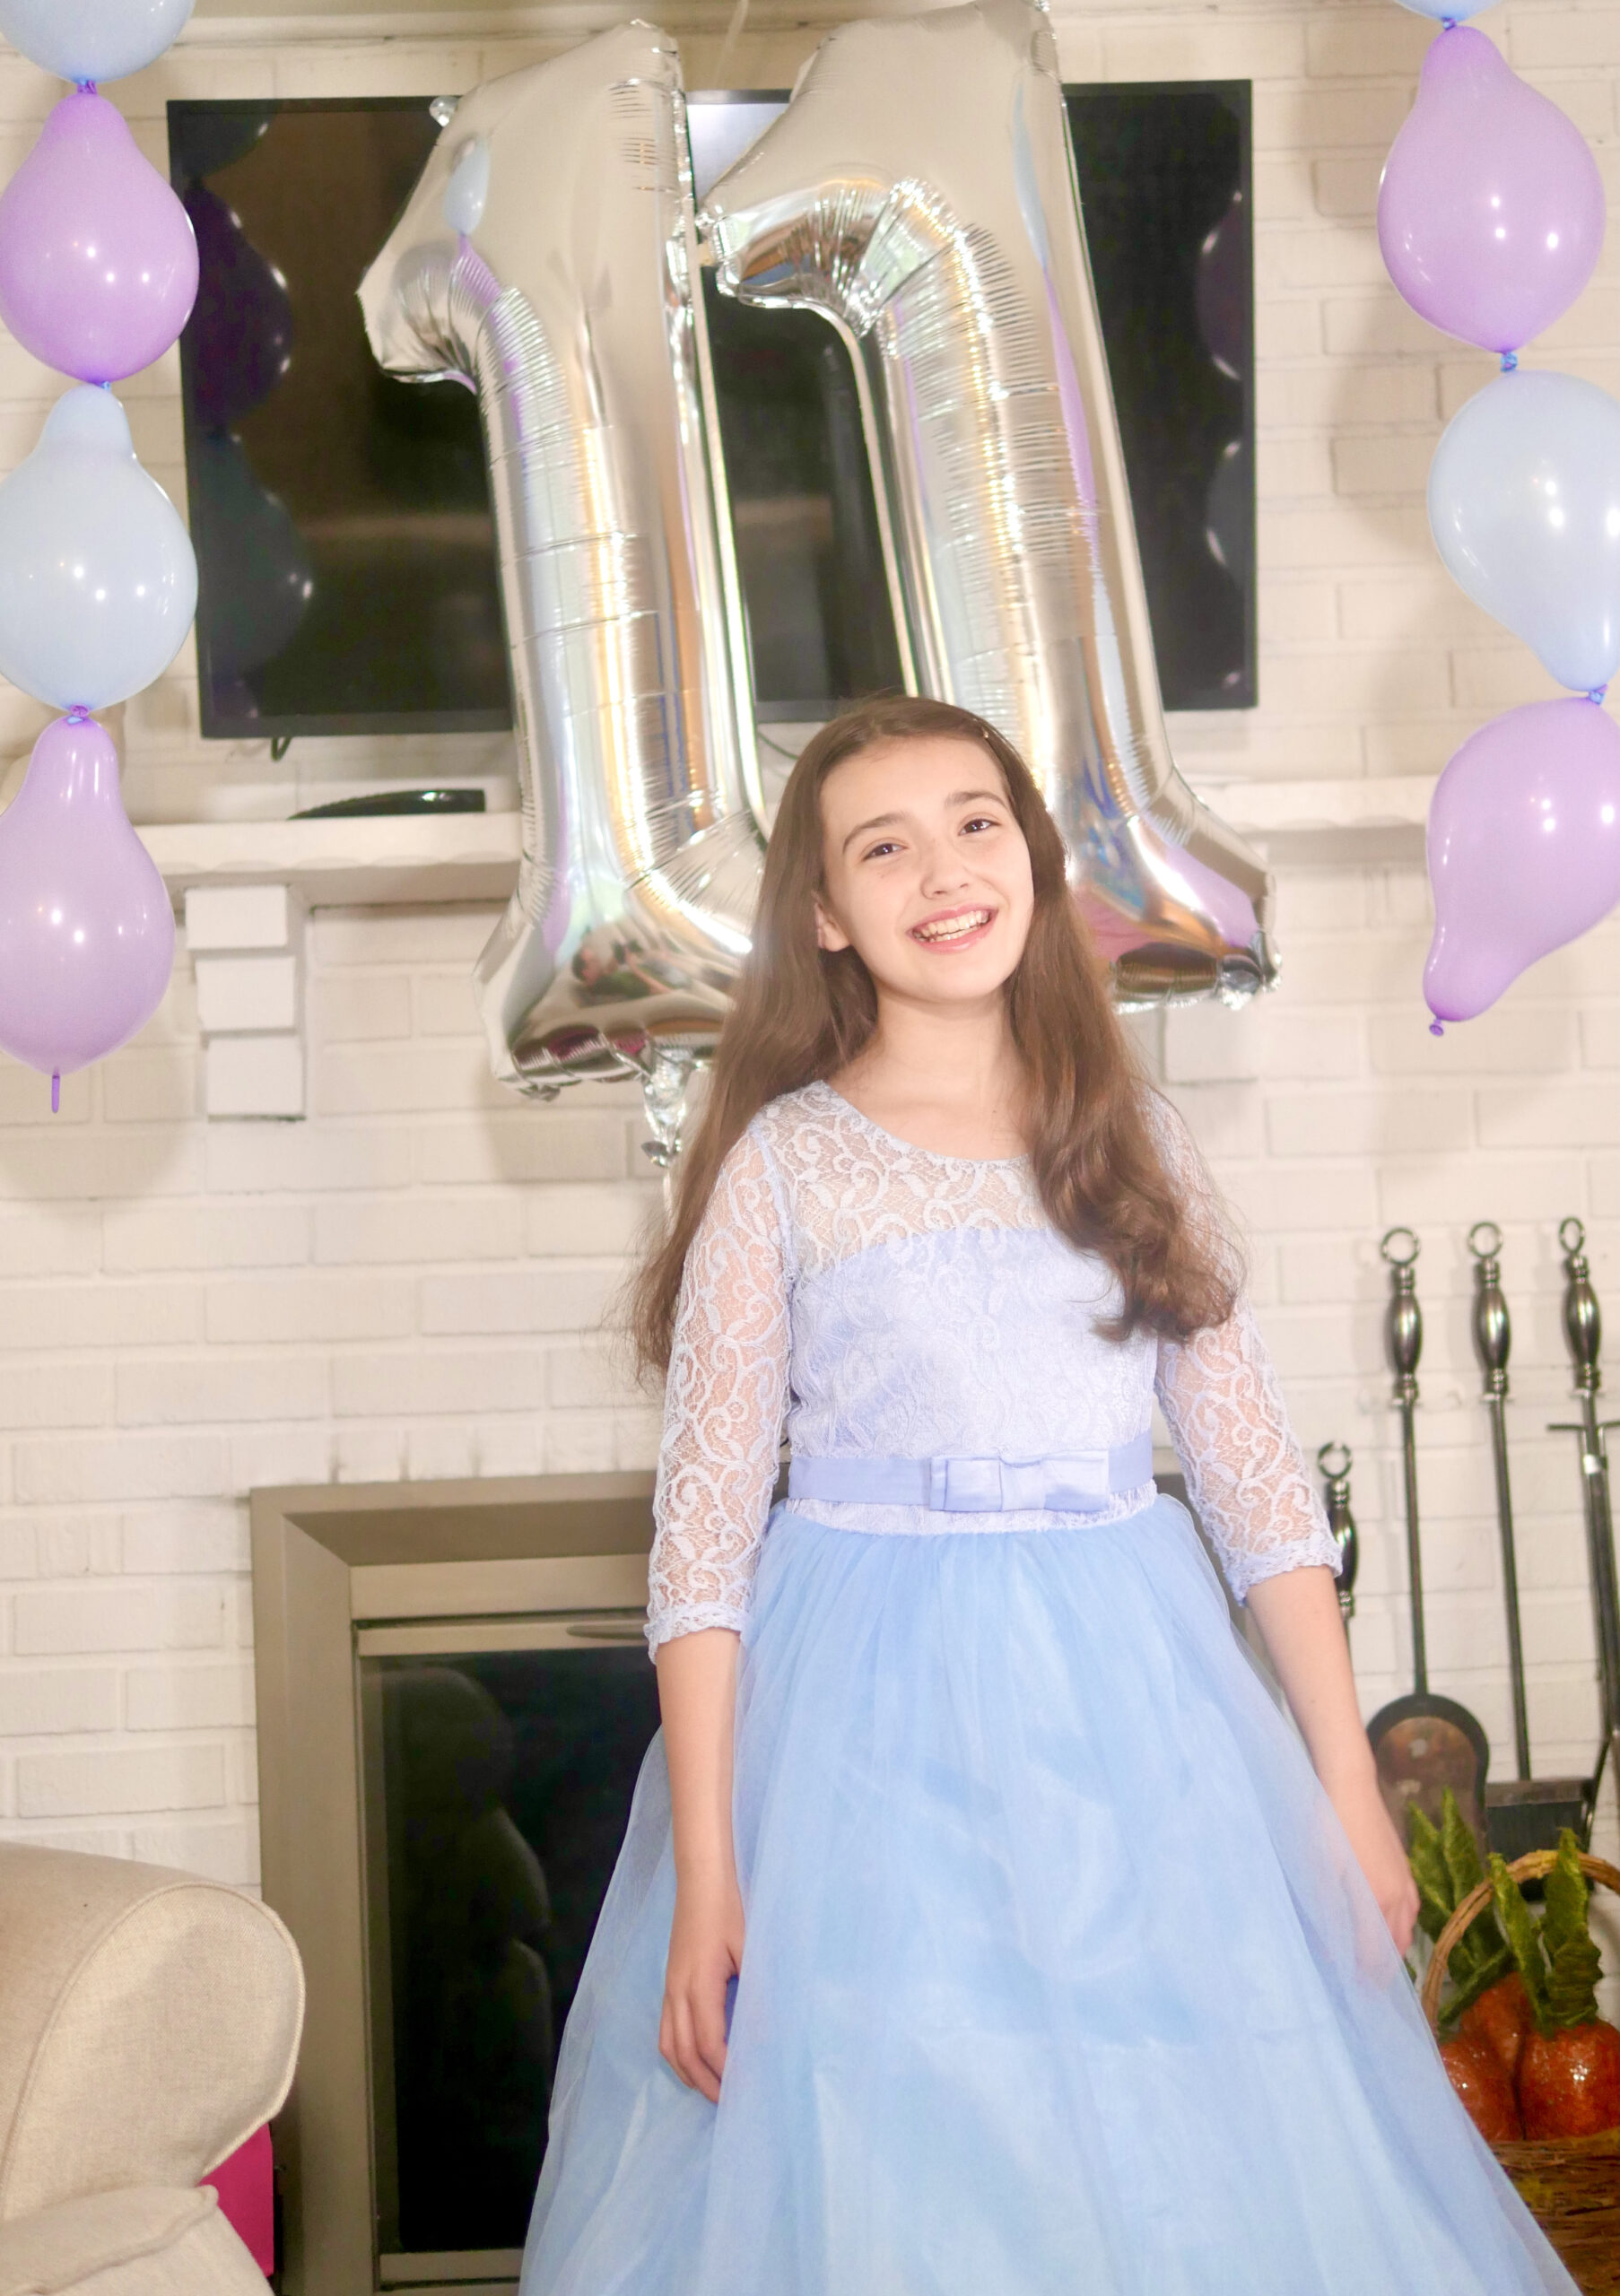 Eleventh Birthday Party Decorations